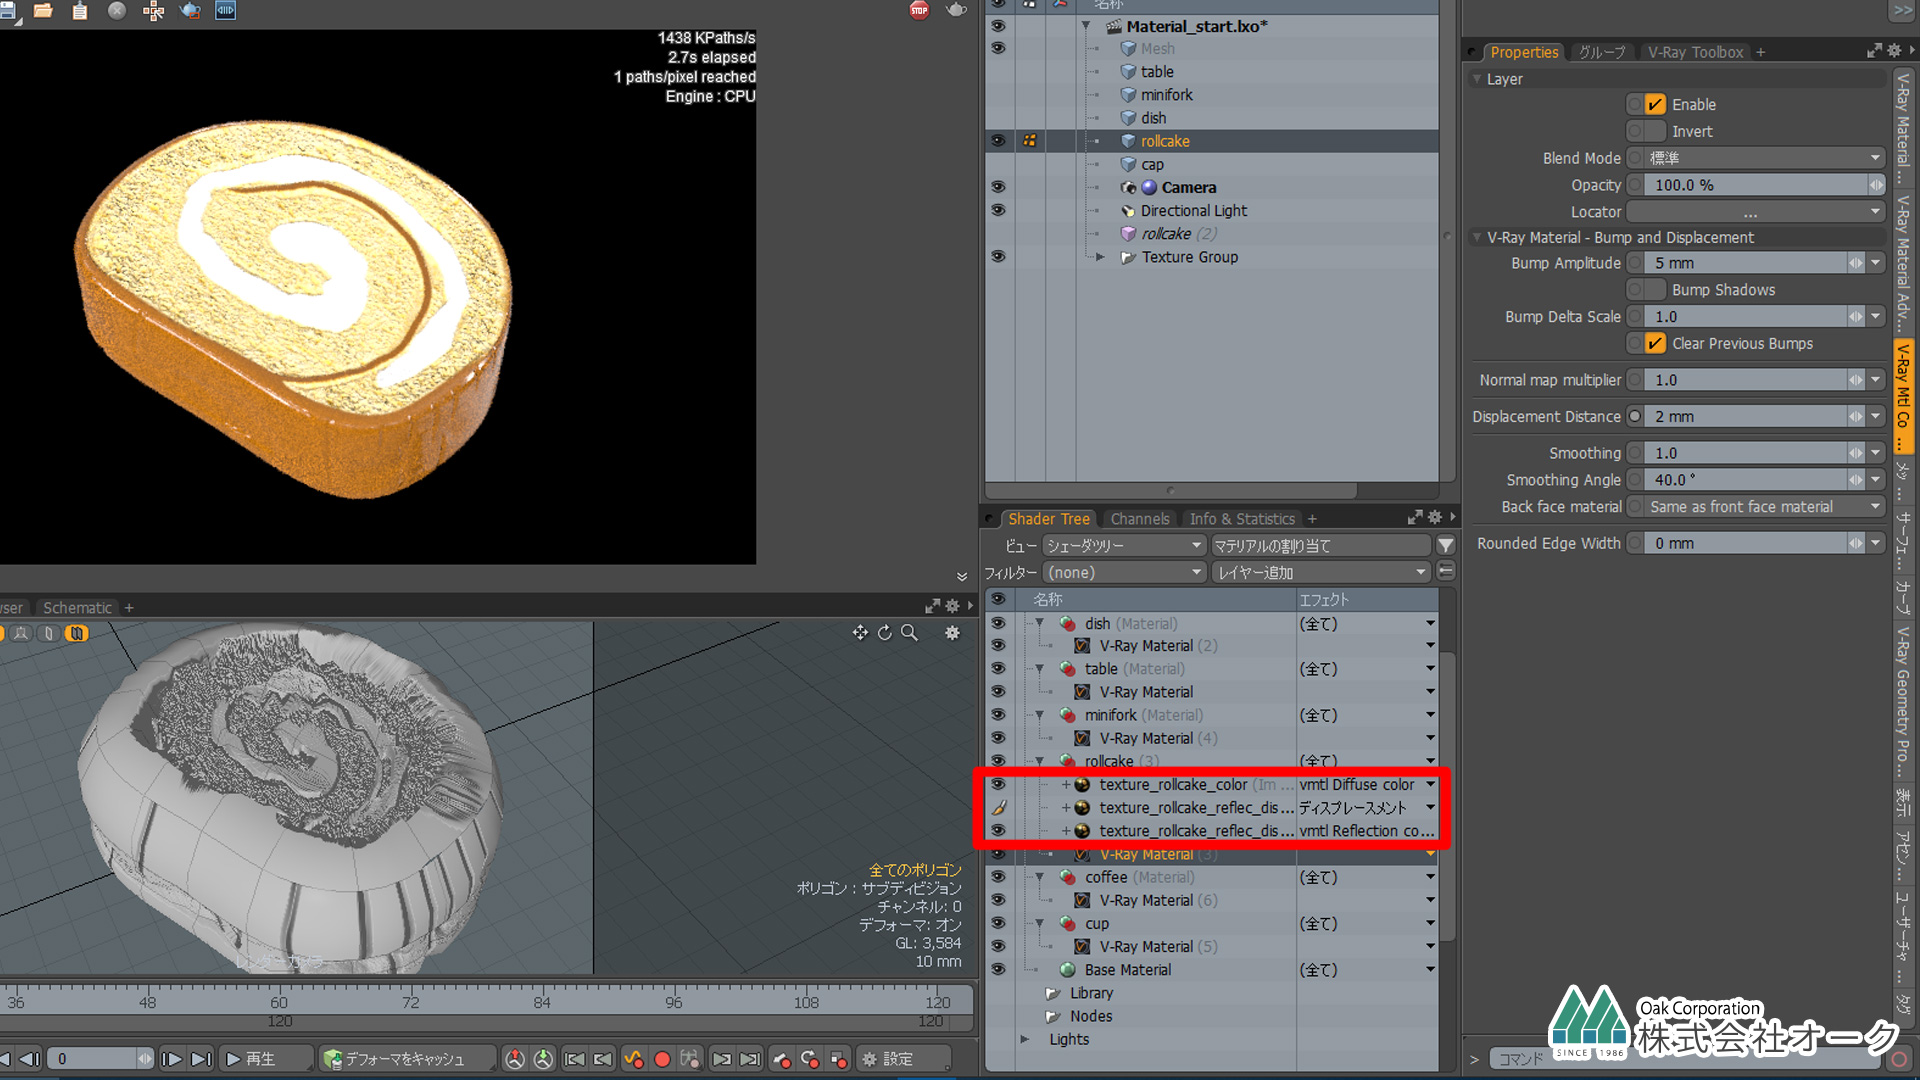 V-Ray Displacement Distance